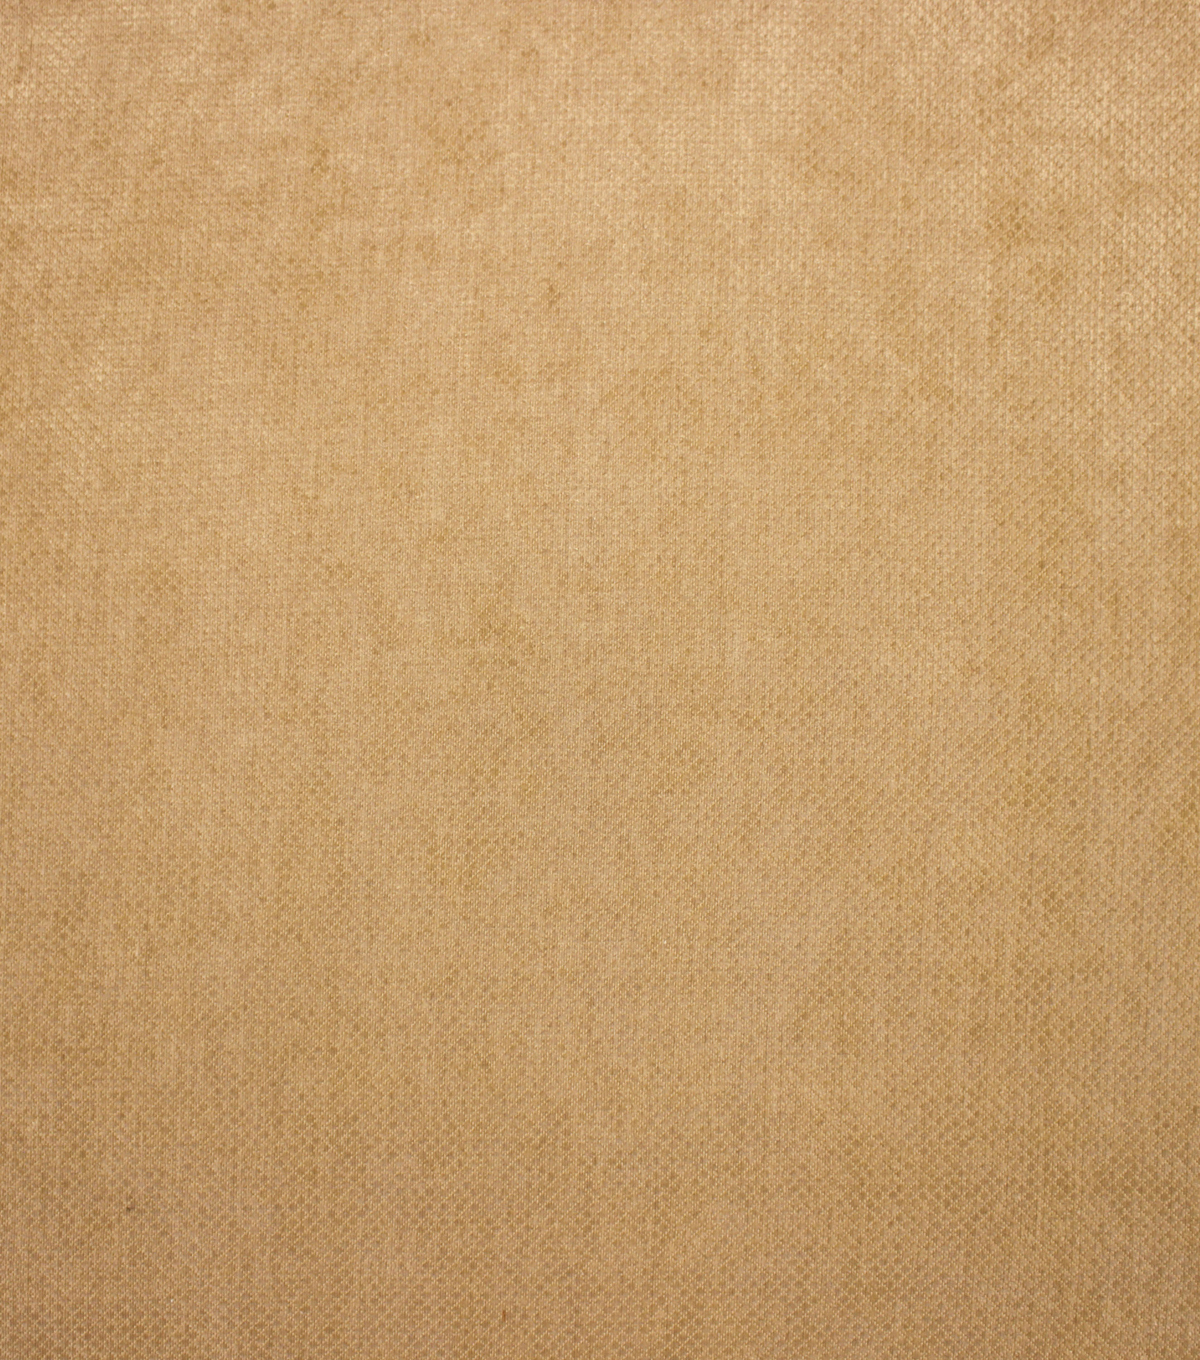 Home Decor 8\u0022x8\u0022 Fabric Swatch-Upholstery Fabric Barrow M7964-5854 Hemp